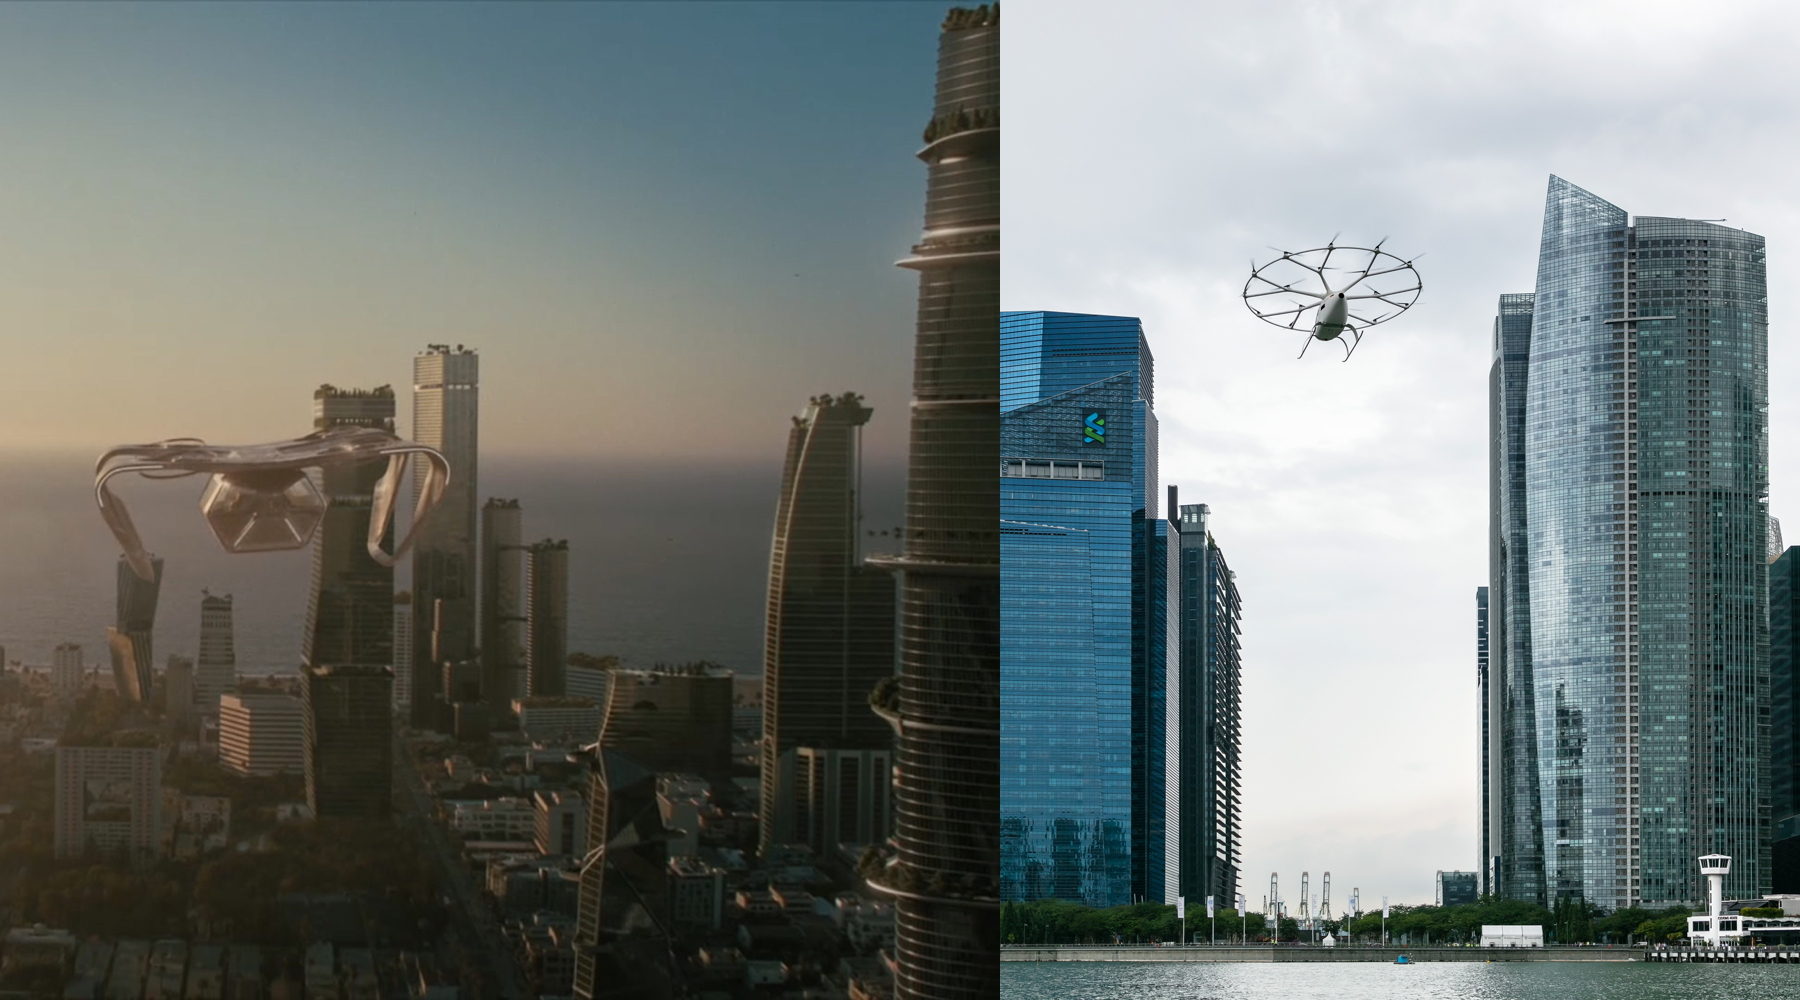 Westworld and Volocopter eVTOL air taxis